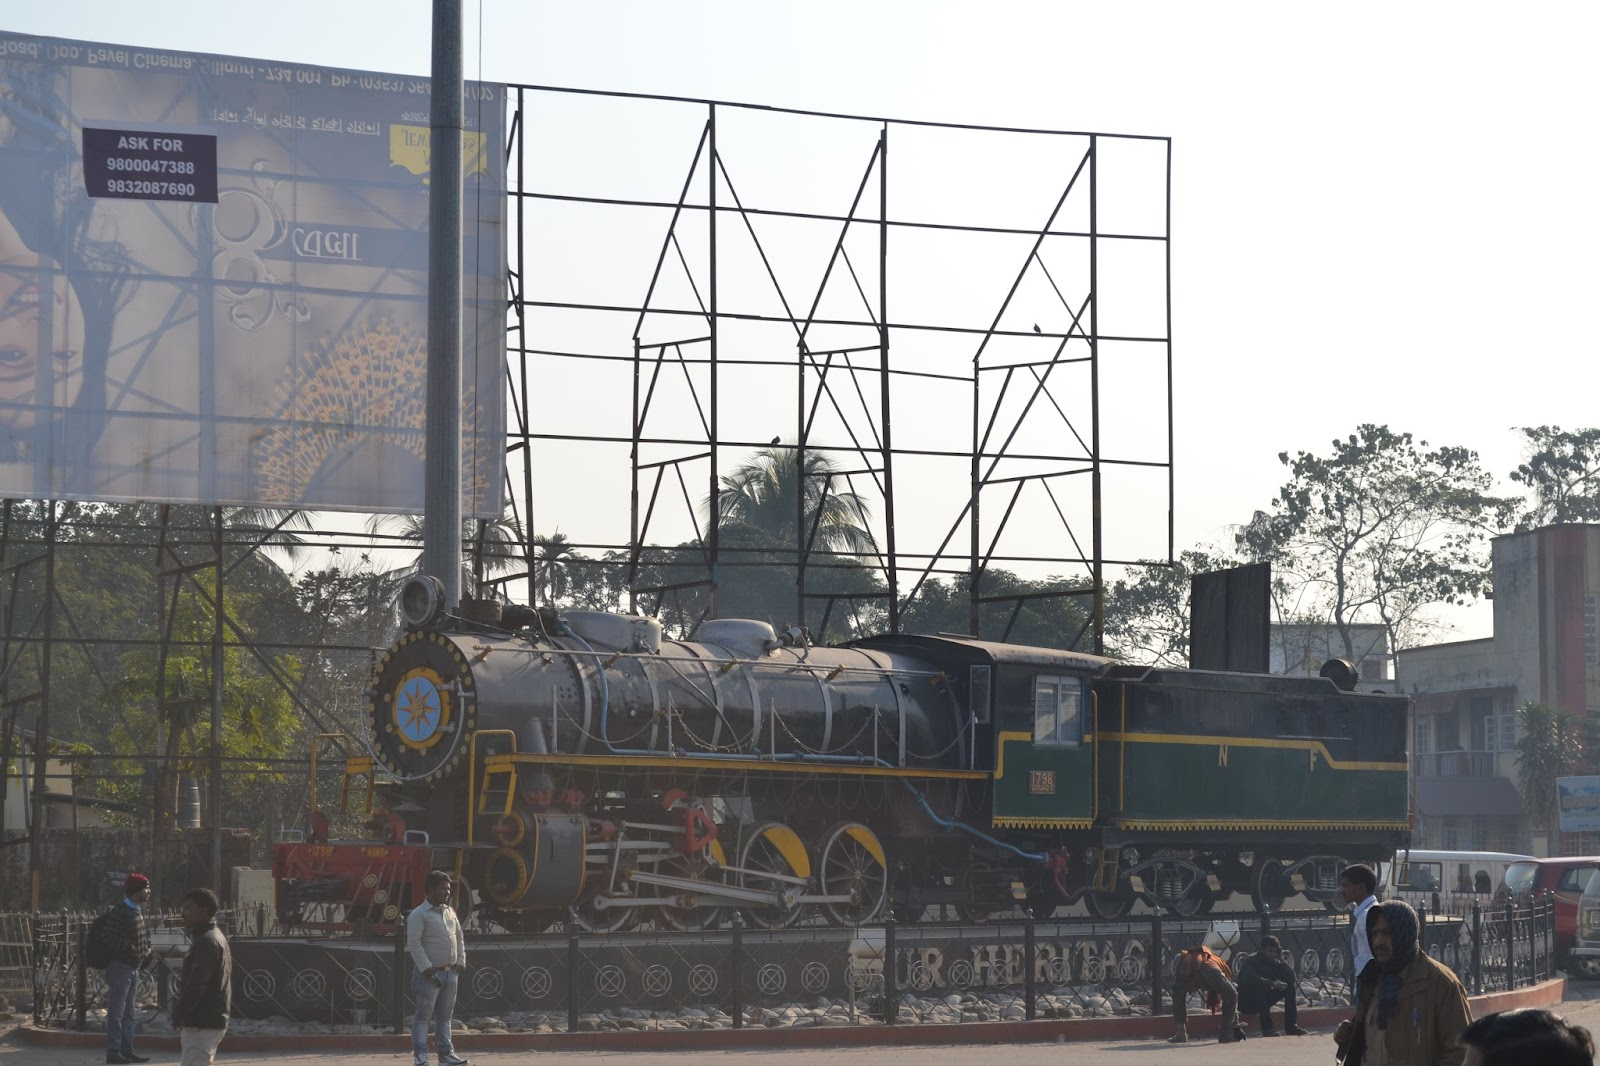 Rail engine displayed in front of jalpaiguri station